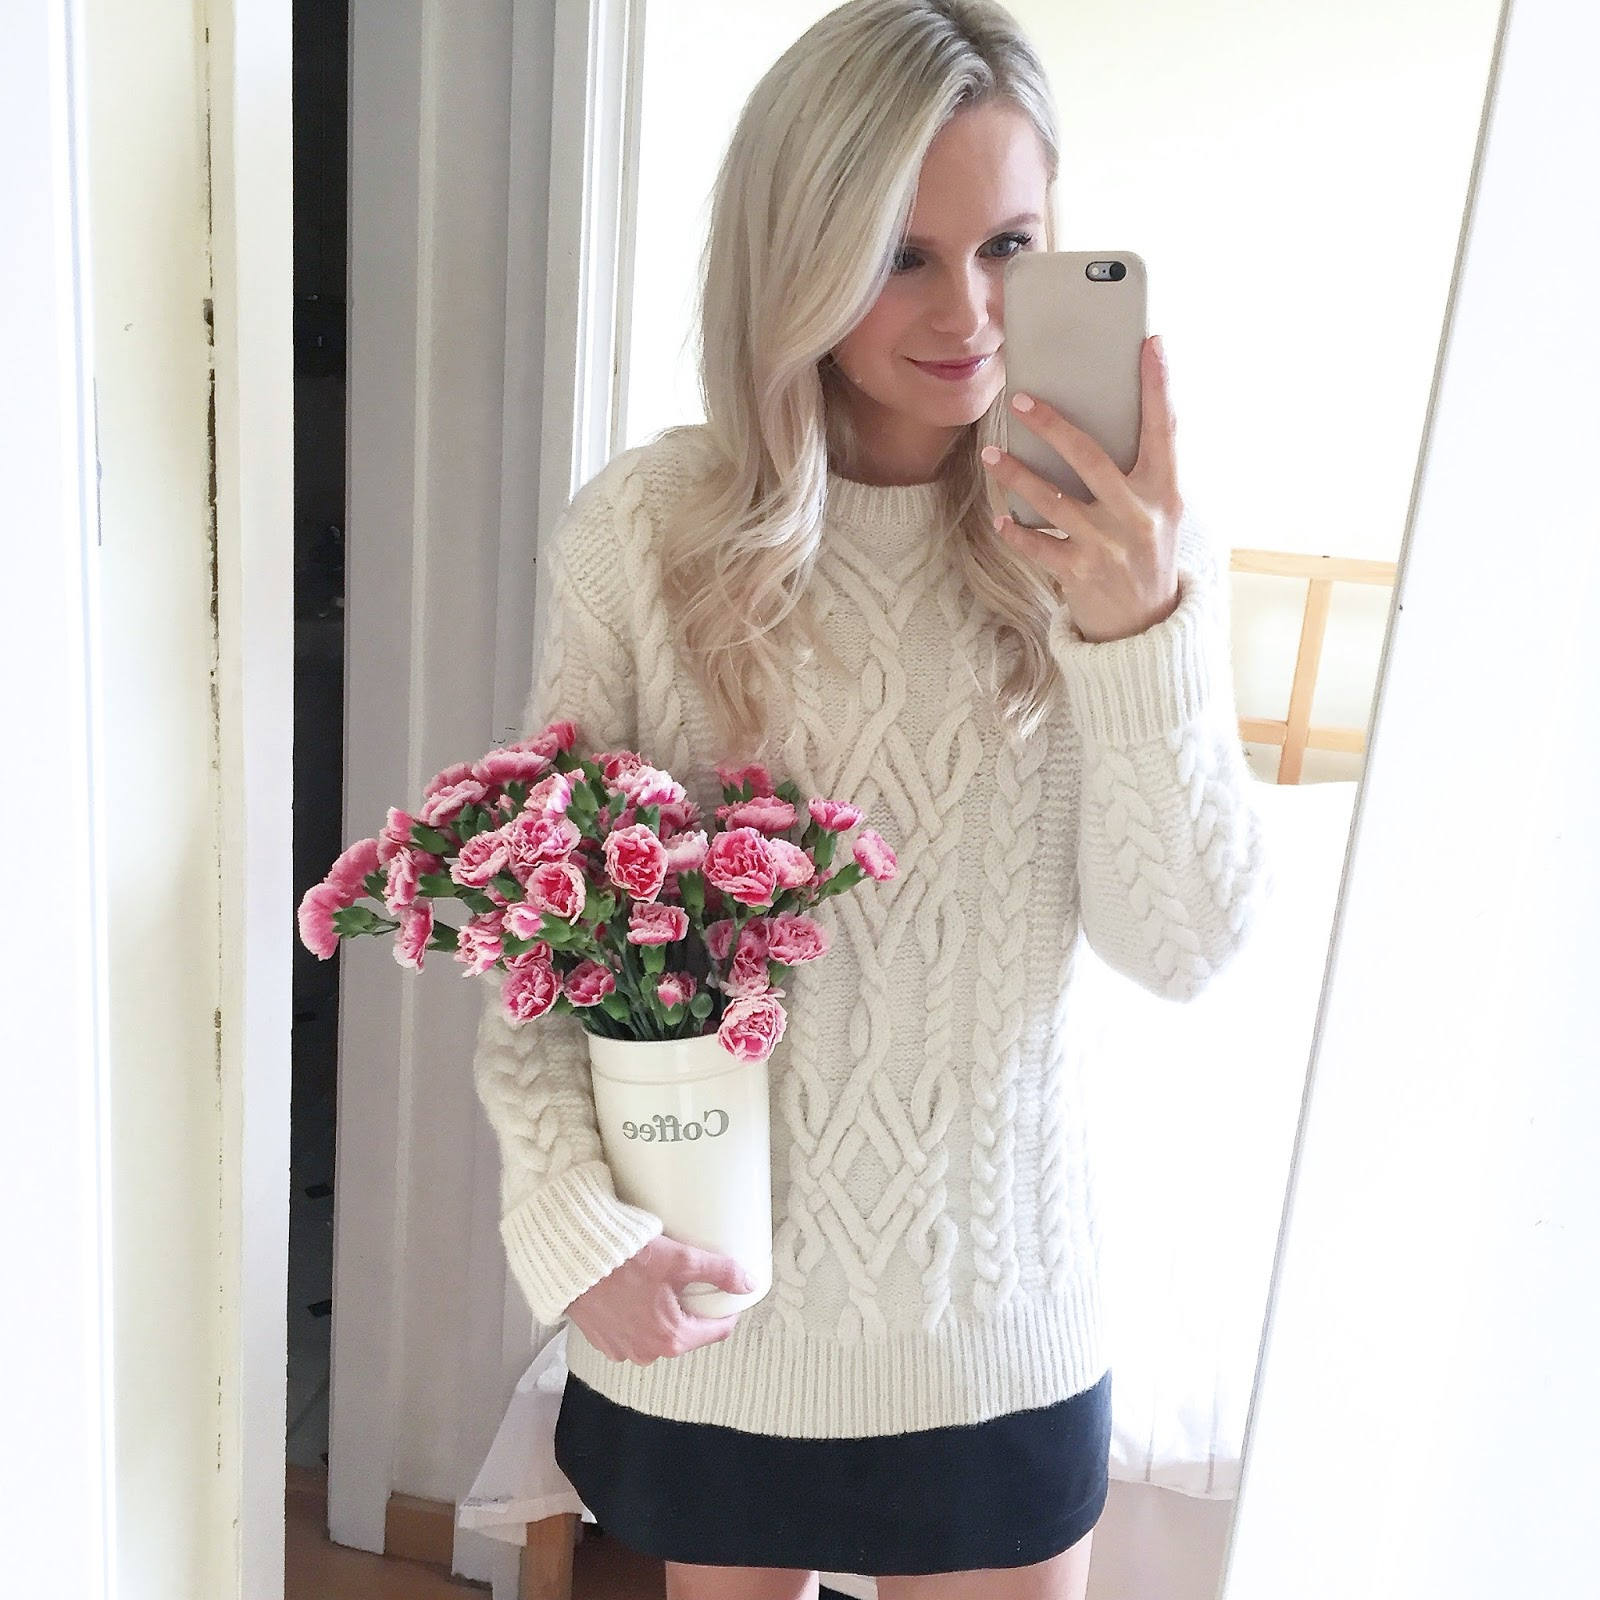 a young women swearing ivory cable knit sweater and holding pink flowers takes a photo of herself in a mirror